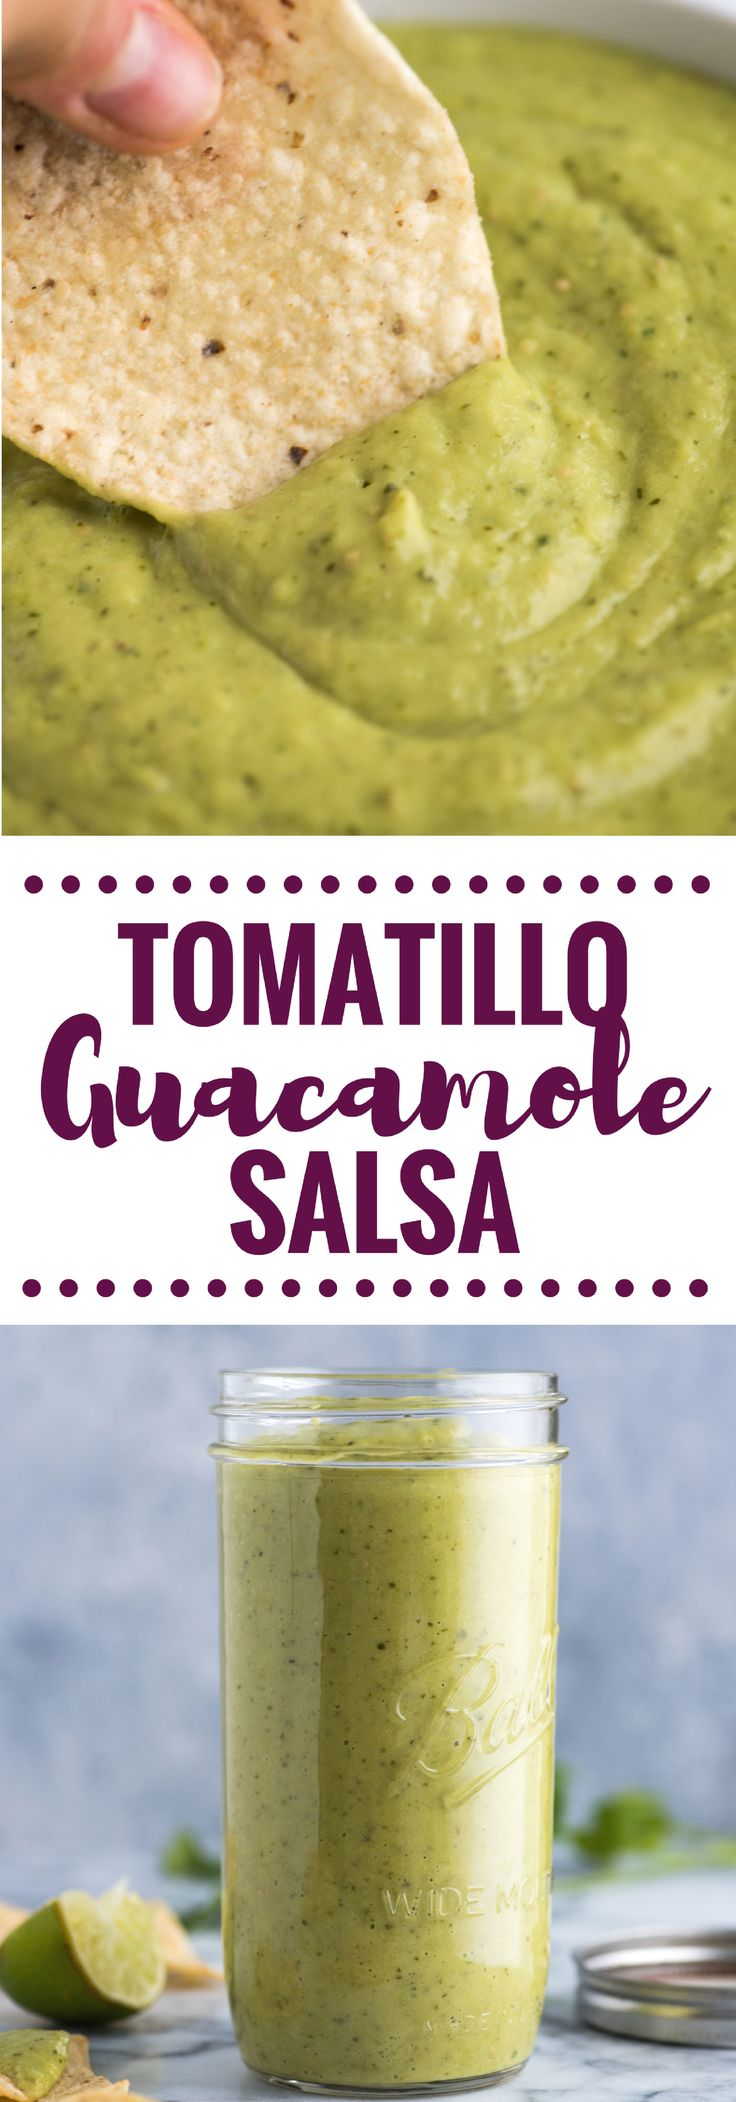 This Tomatillo Guacamole Salsa combines salsa verde and guacamole to create an addicting appetizer and salsa! Is also gluten free, dairy free, paleo and vegan.